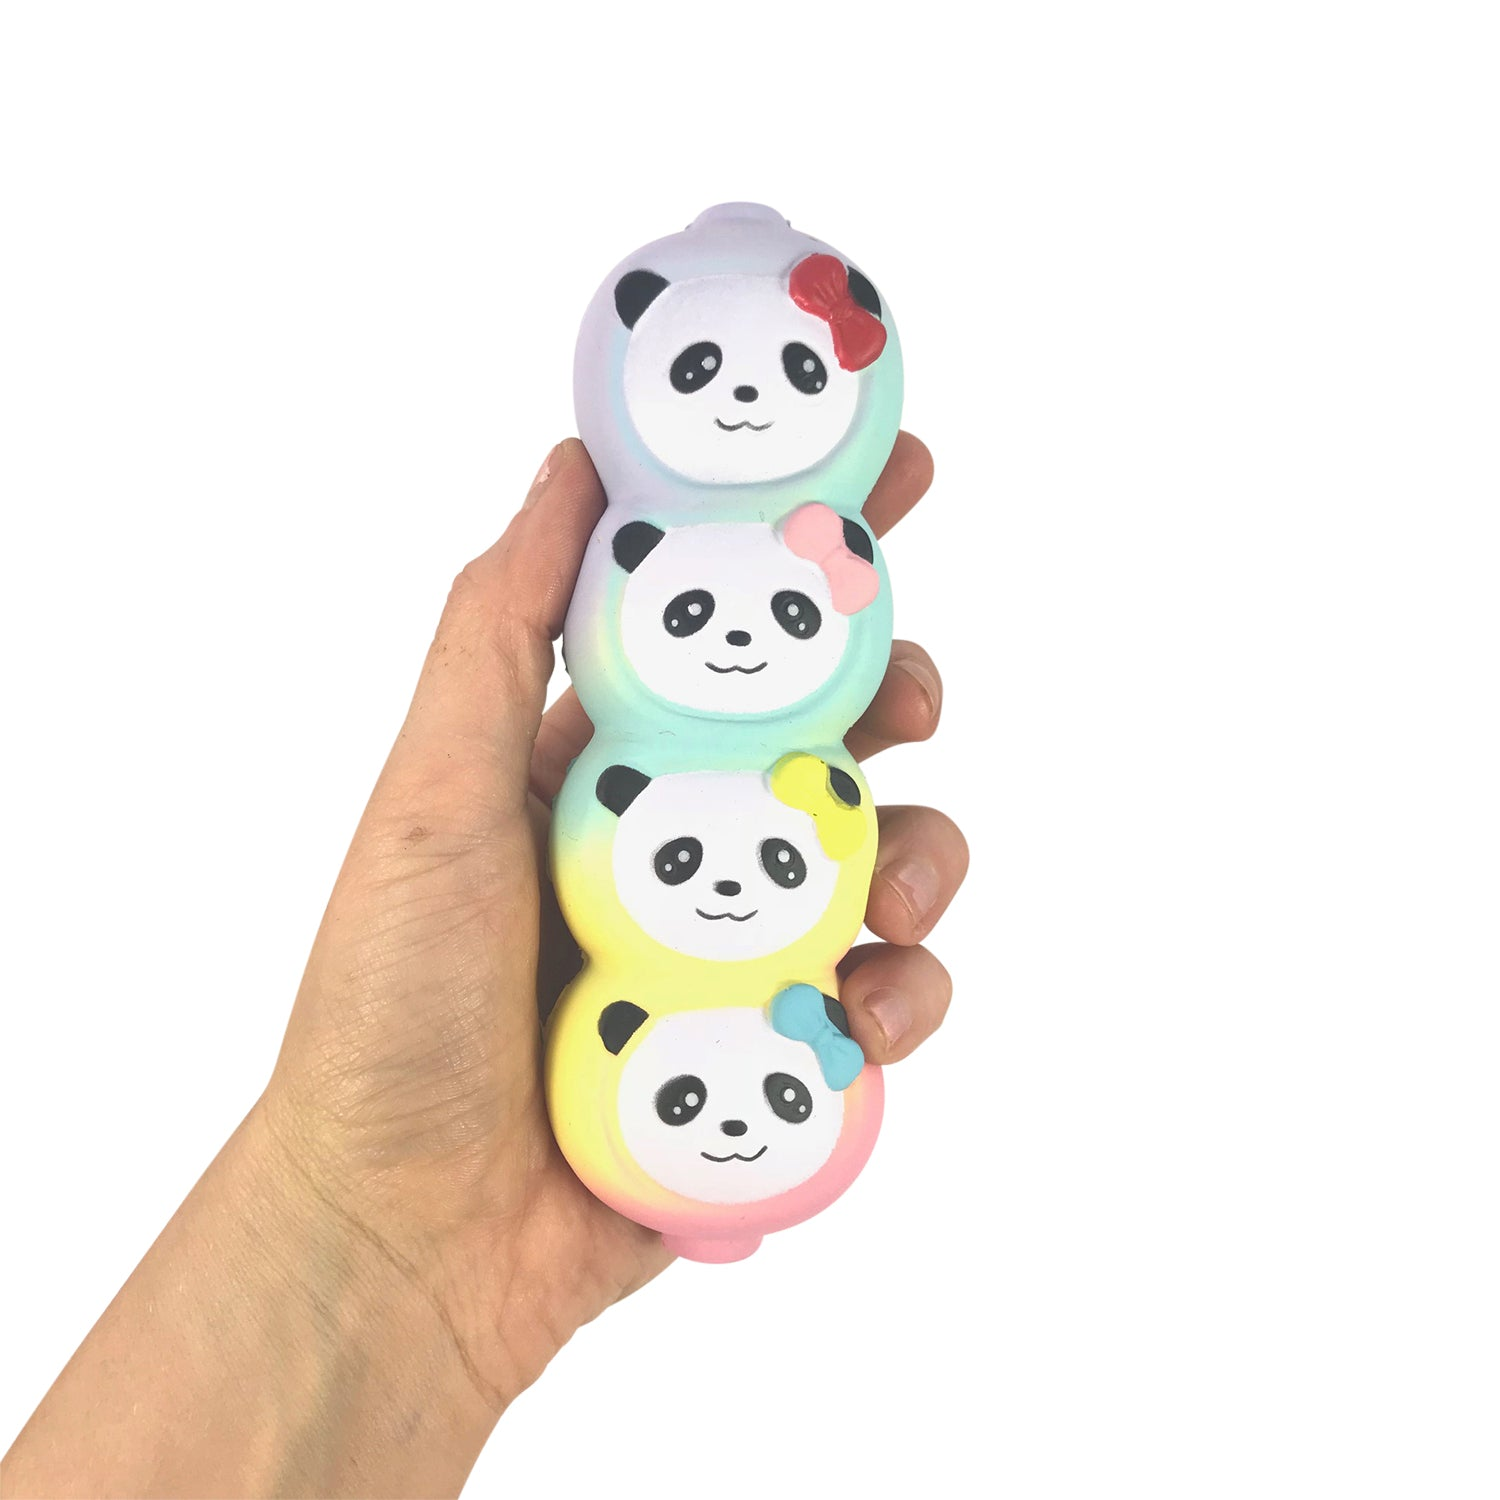 SCENTED Sweet PANDA Rainbow DANGO Squishy!